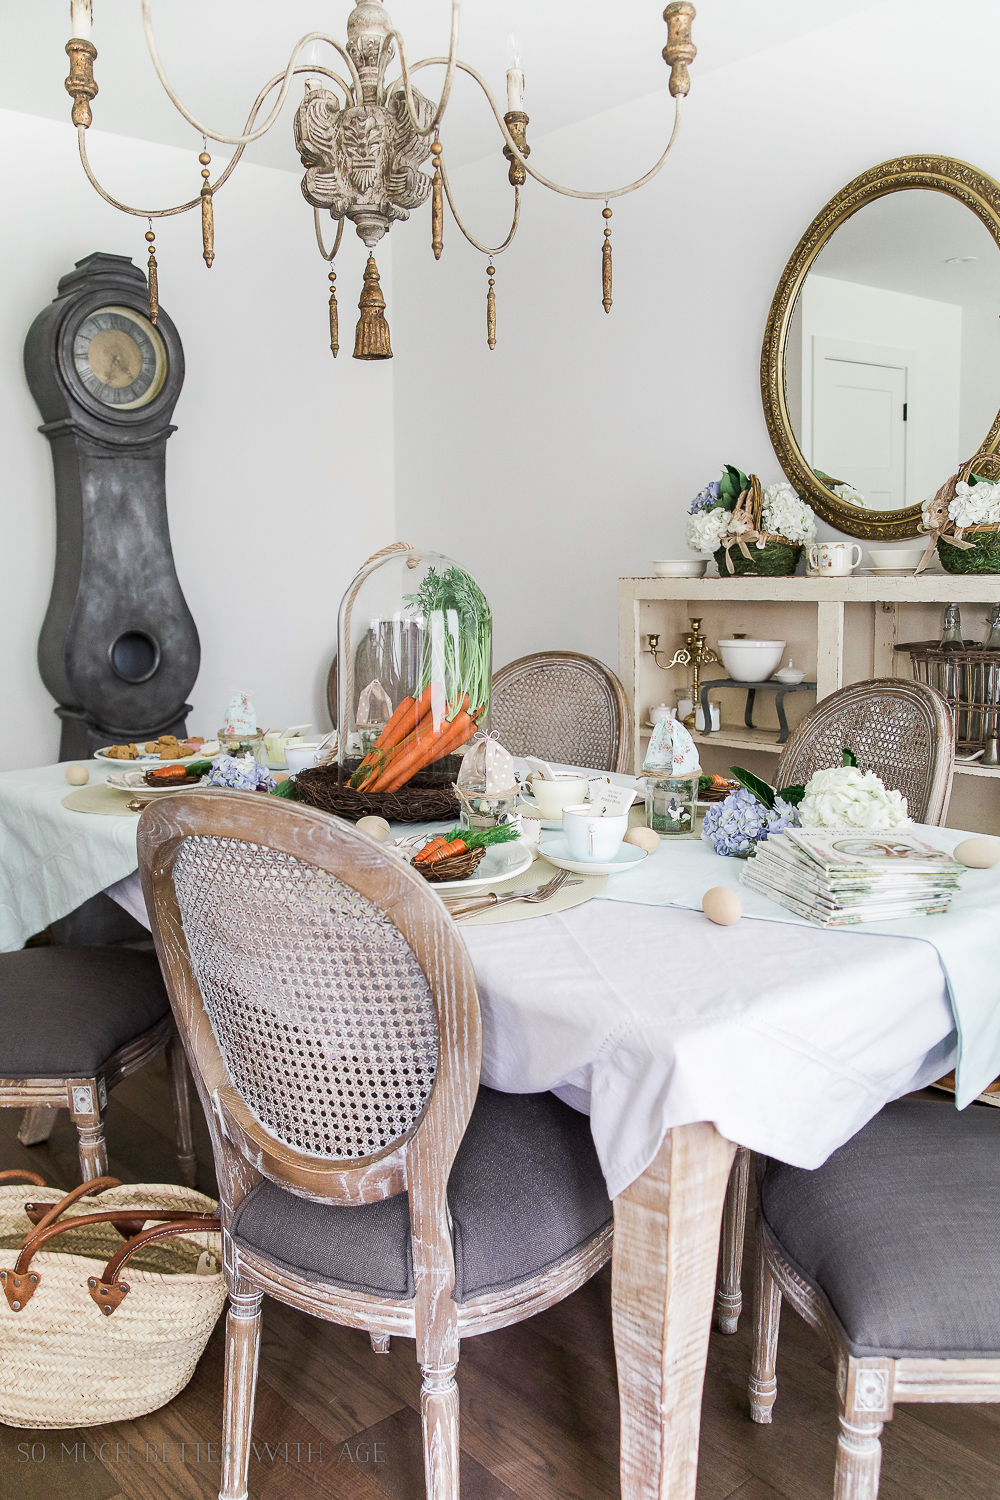 How to Set a Peter Rabbit Inspired Easter table - So Much Better With Age